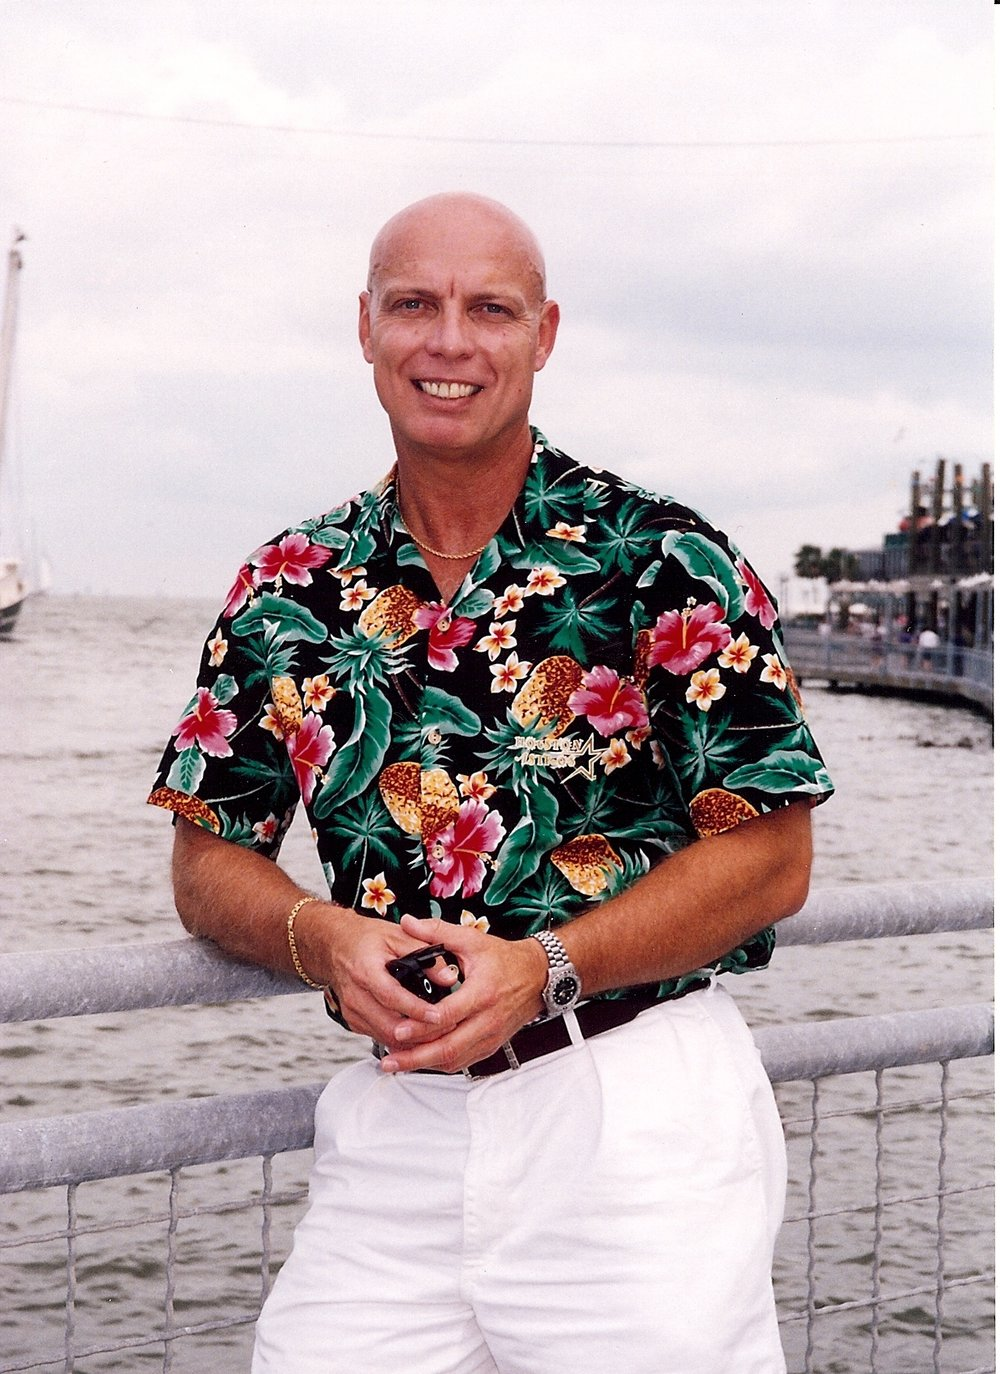 Bob McNeil - 2001 - Age 52 - On the Boardwalk in Kemah, Texas